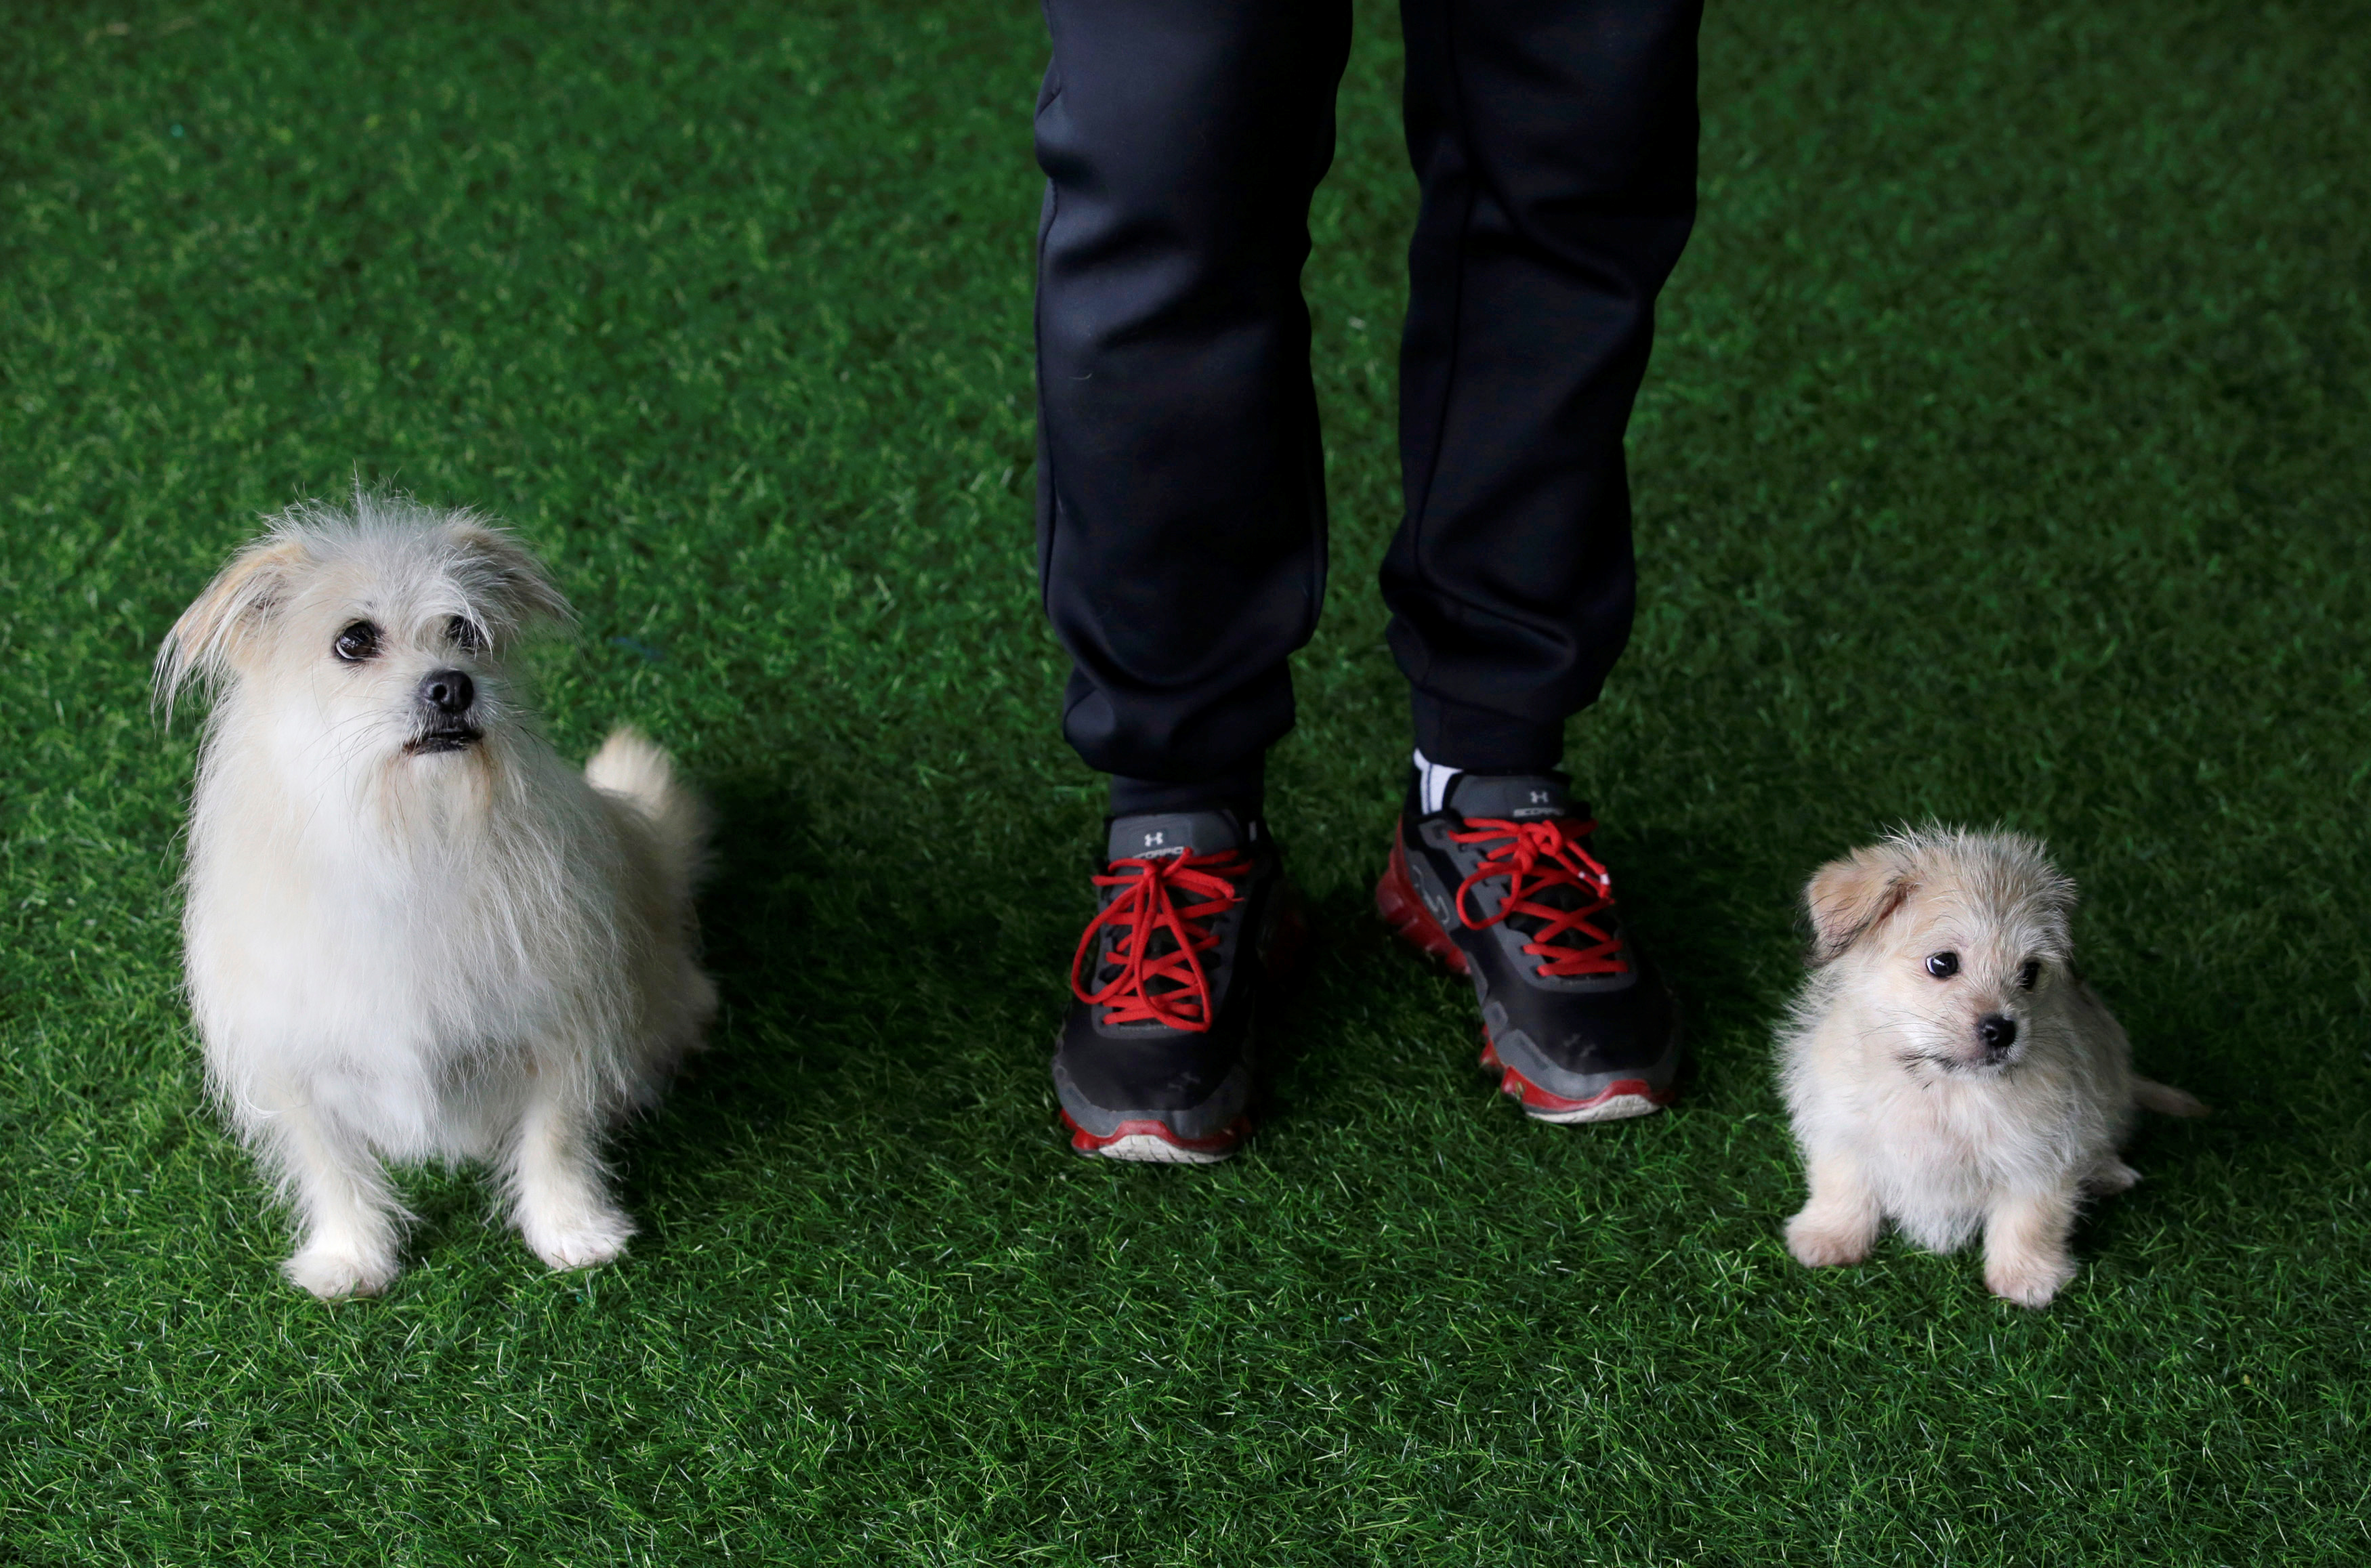 Owner He Jun poses with his dogs, nine-year-old Juice and its two-month-old clone, at his pet resort in Beijing, China November 26, 2018. Picture taken November 26, 2018. REUTERS/Jason Lee